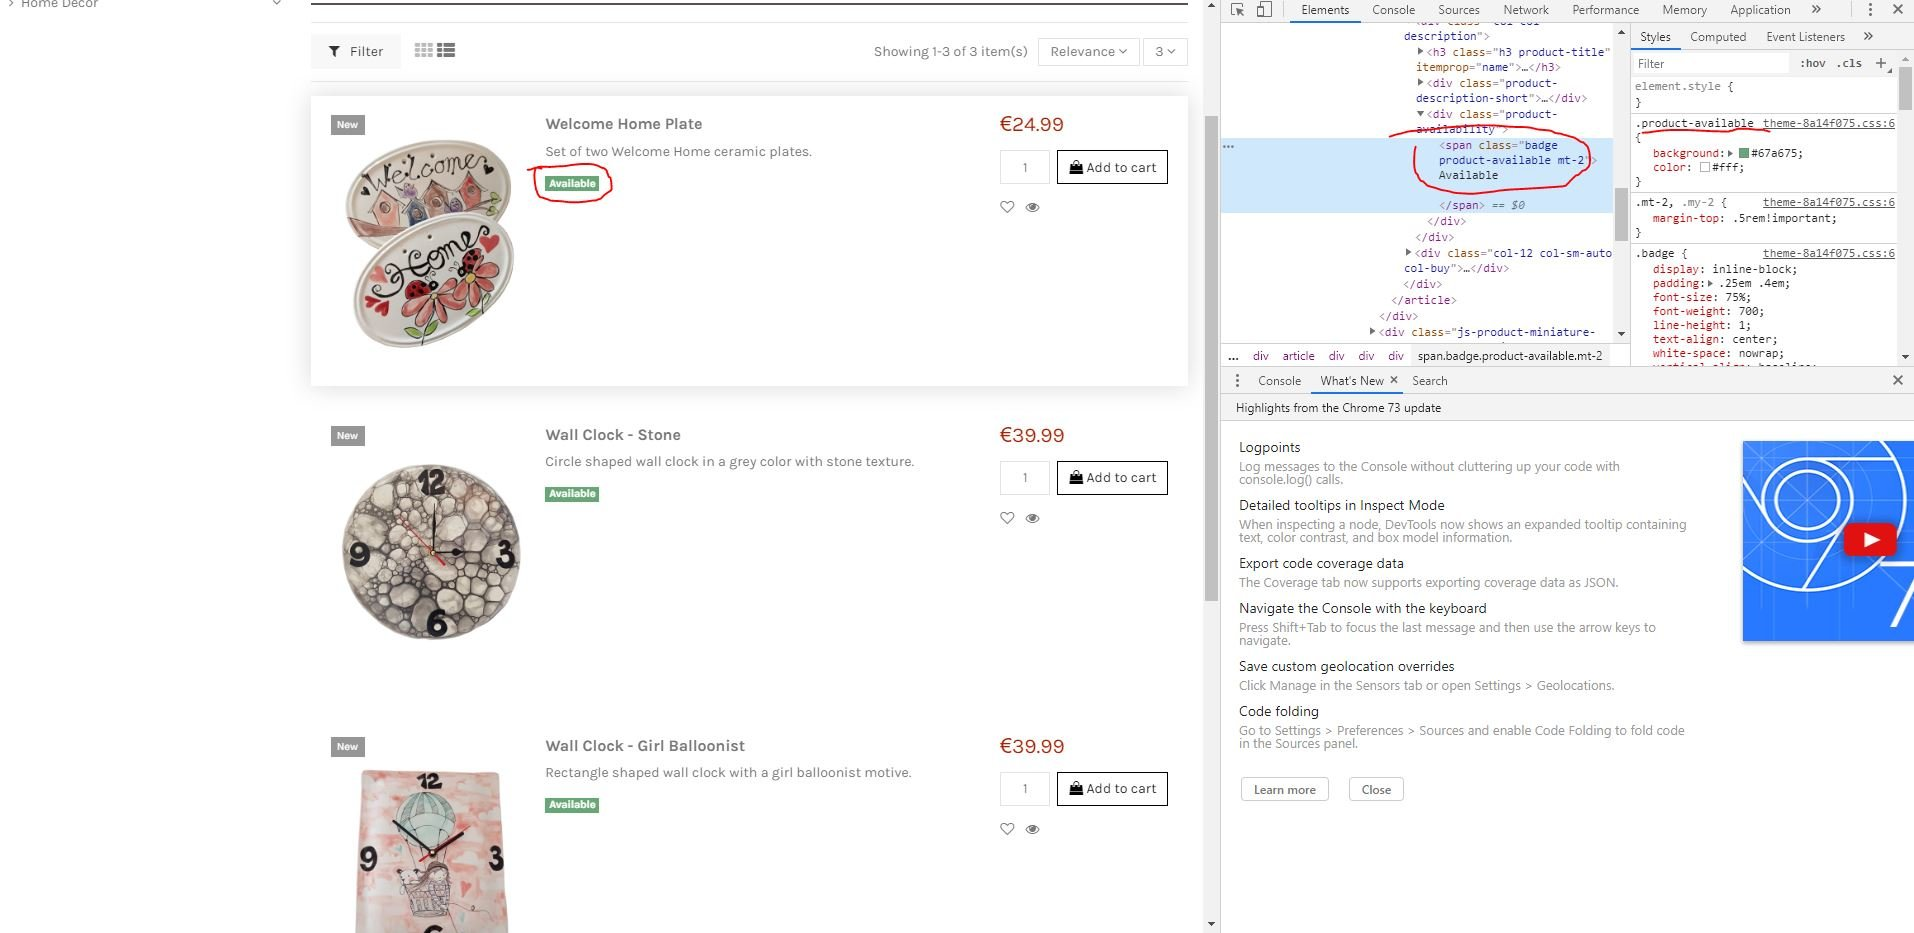 Enable ordering out of stock products - Configuring and